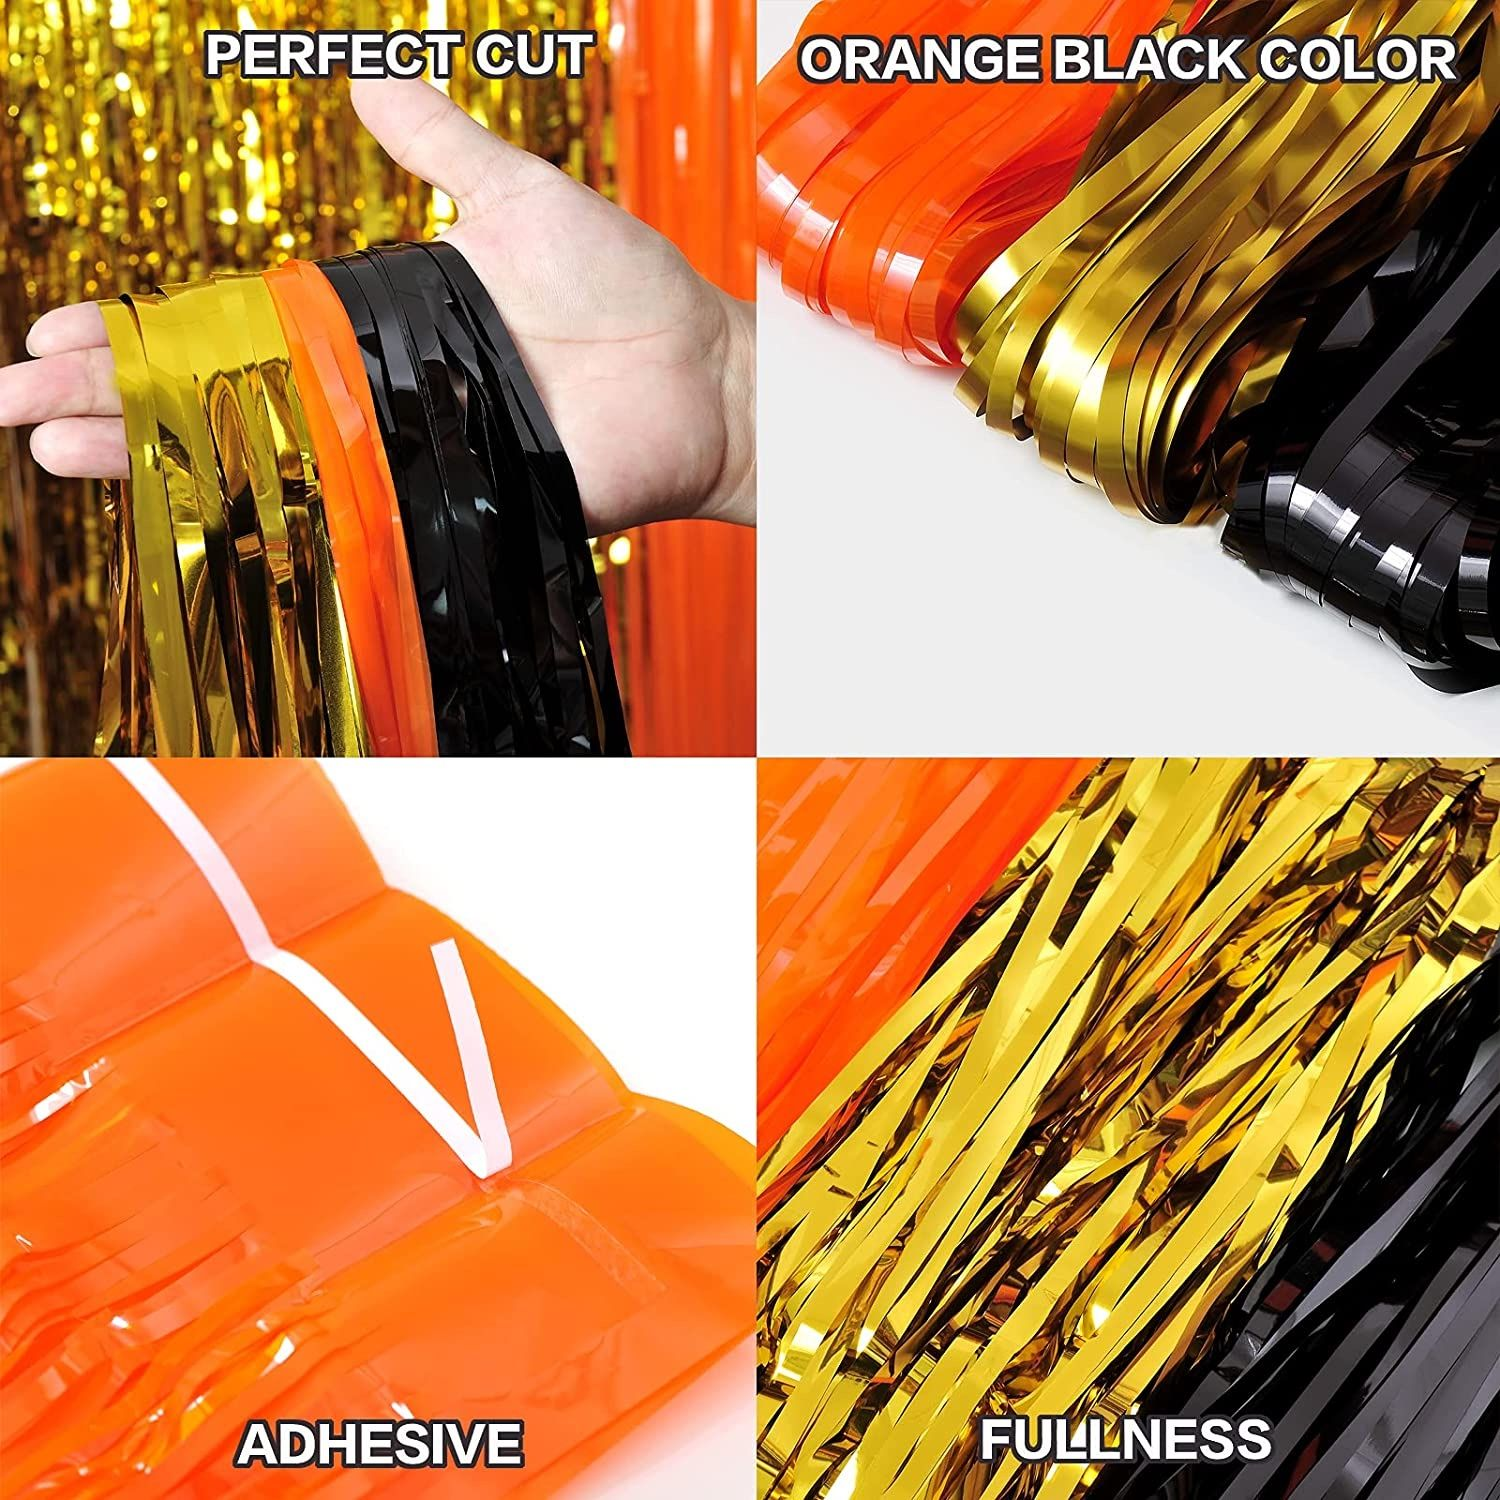 3 Packs Halloween Tinsel Foil Fringe Curtains Black Orange Gold with 8 Pcs Pull Flag Halloween Theme Party Supplies for Halloween Party Photo Backdrop